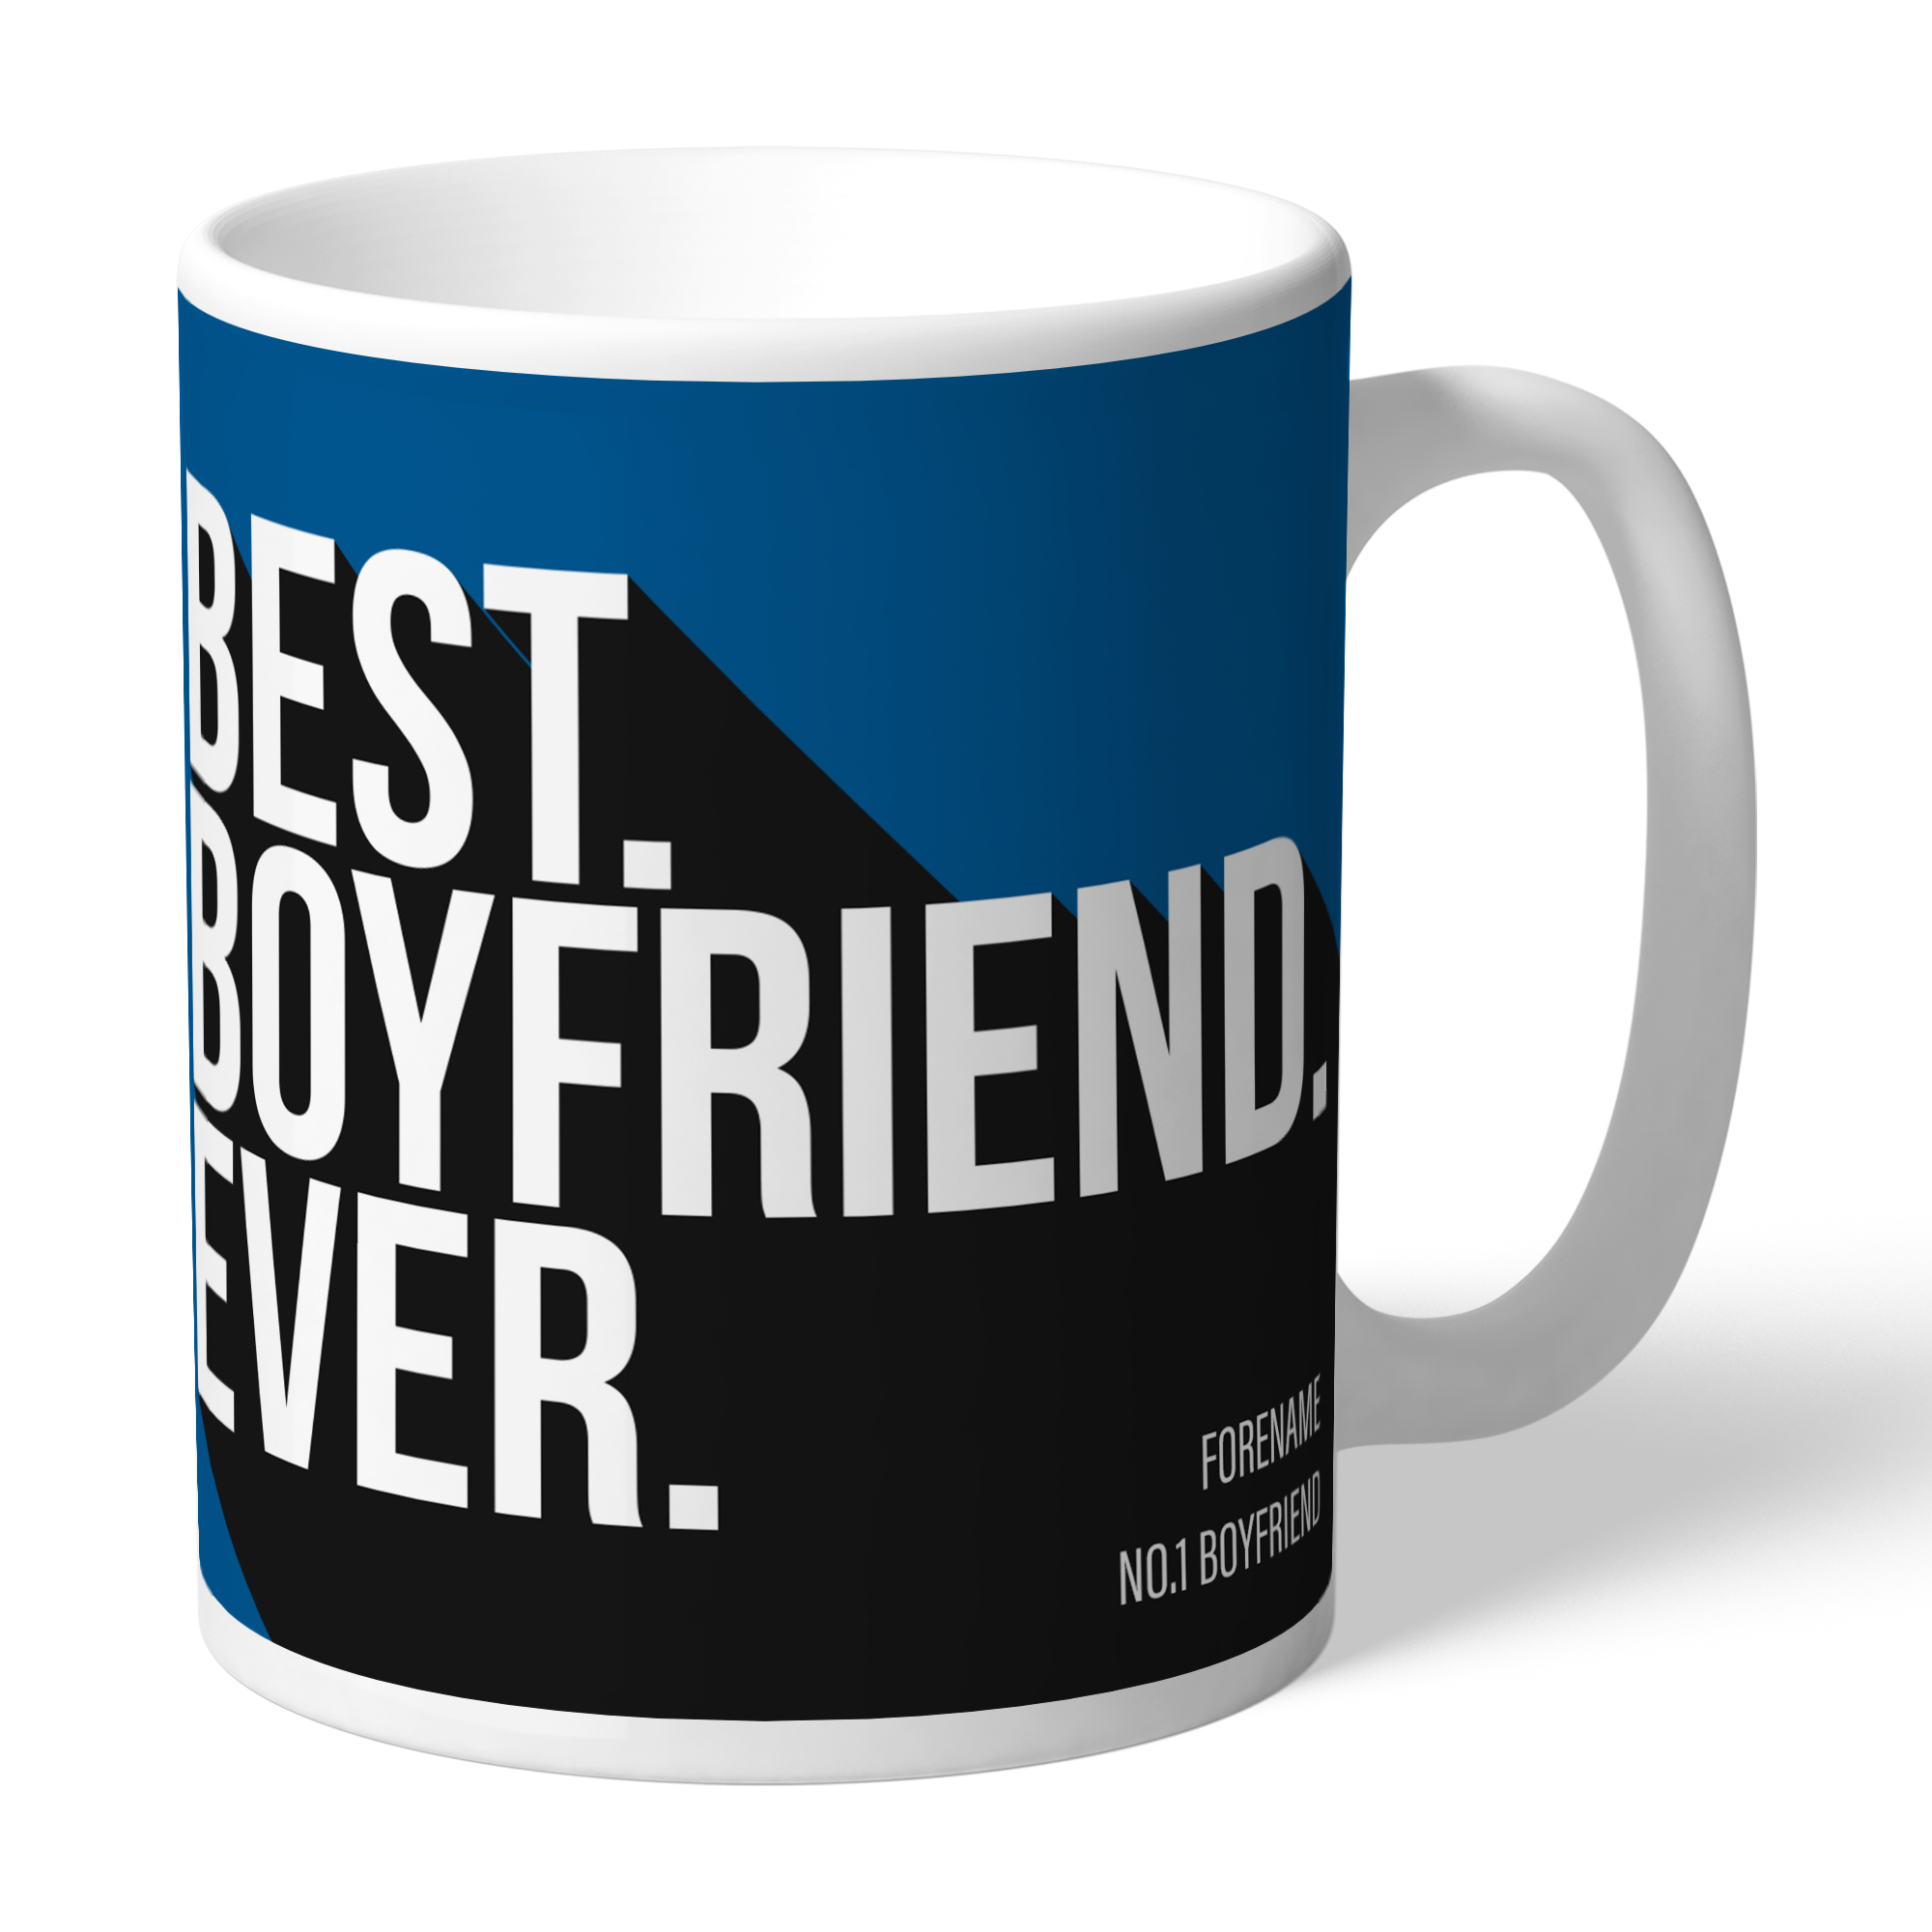 Leeds United Best Boyfriend Ever Mug